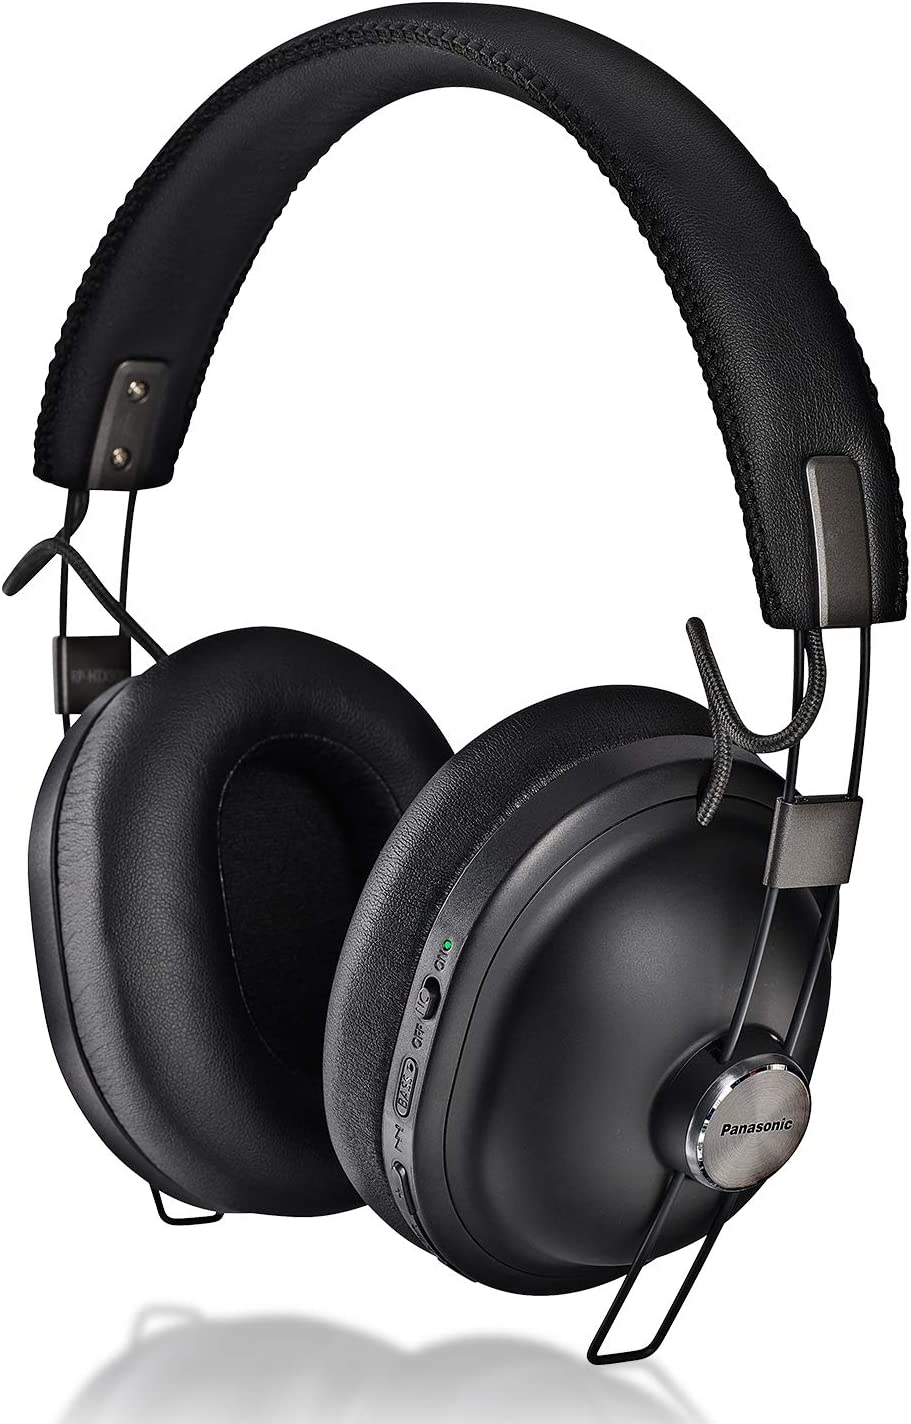 Panasonic Retro Noise Canceling